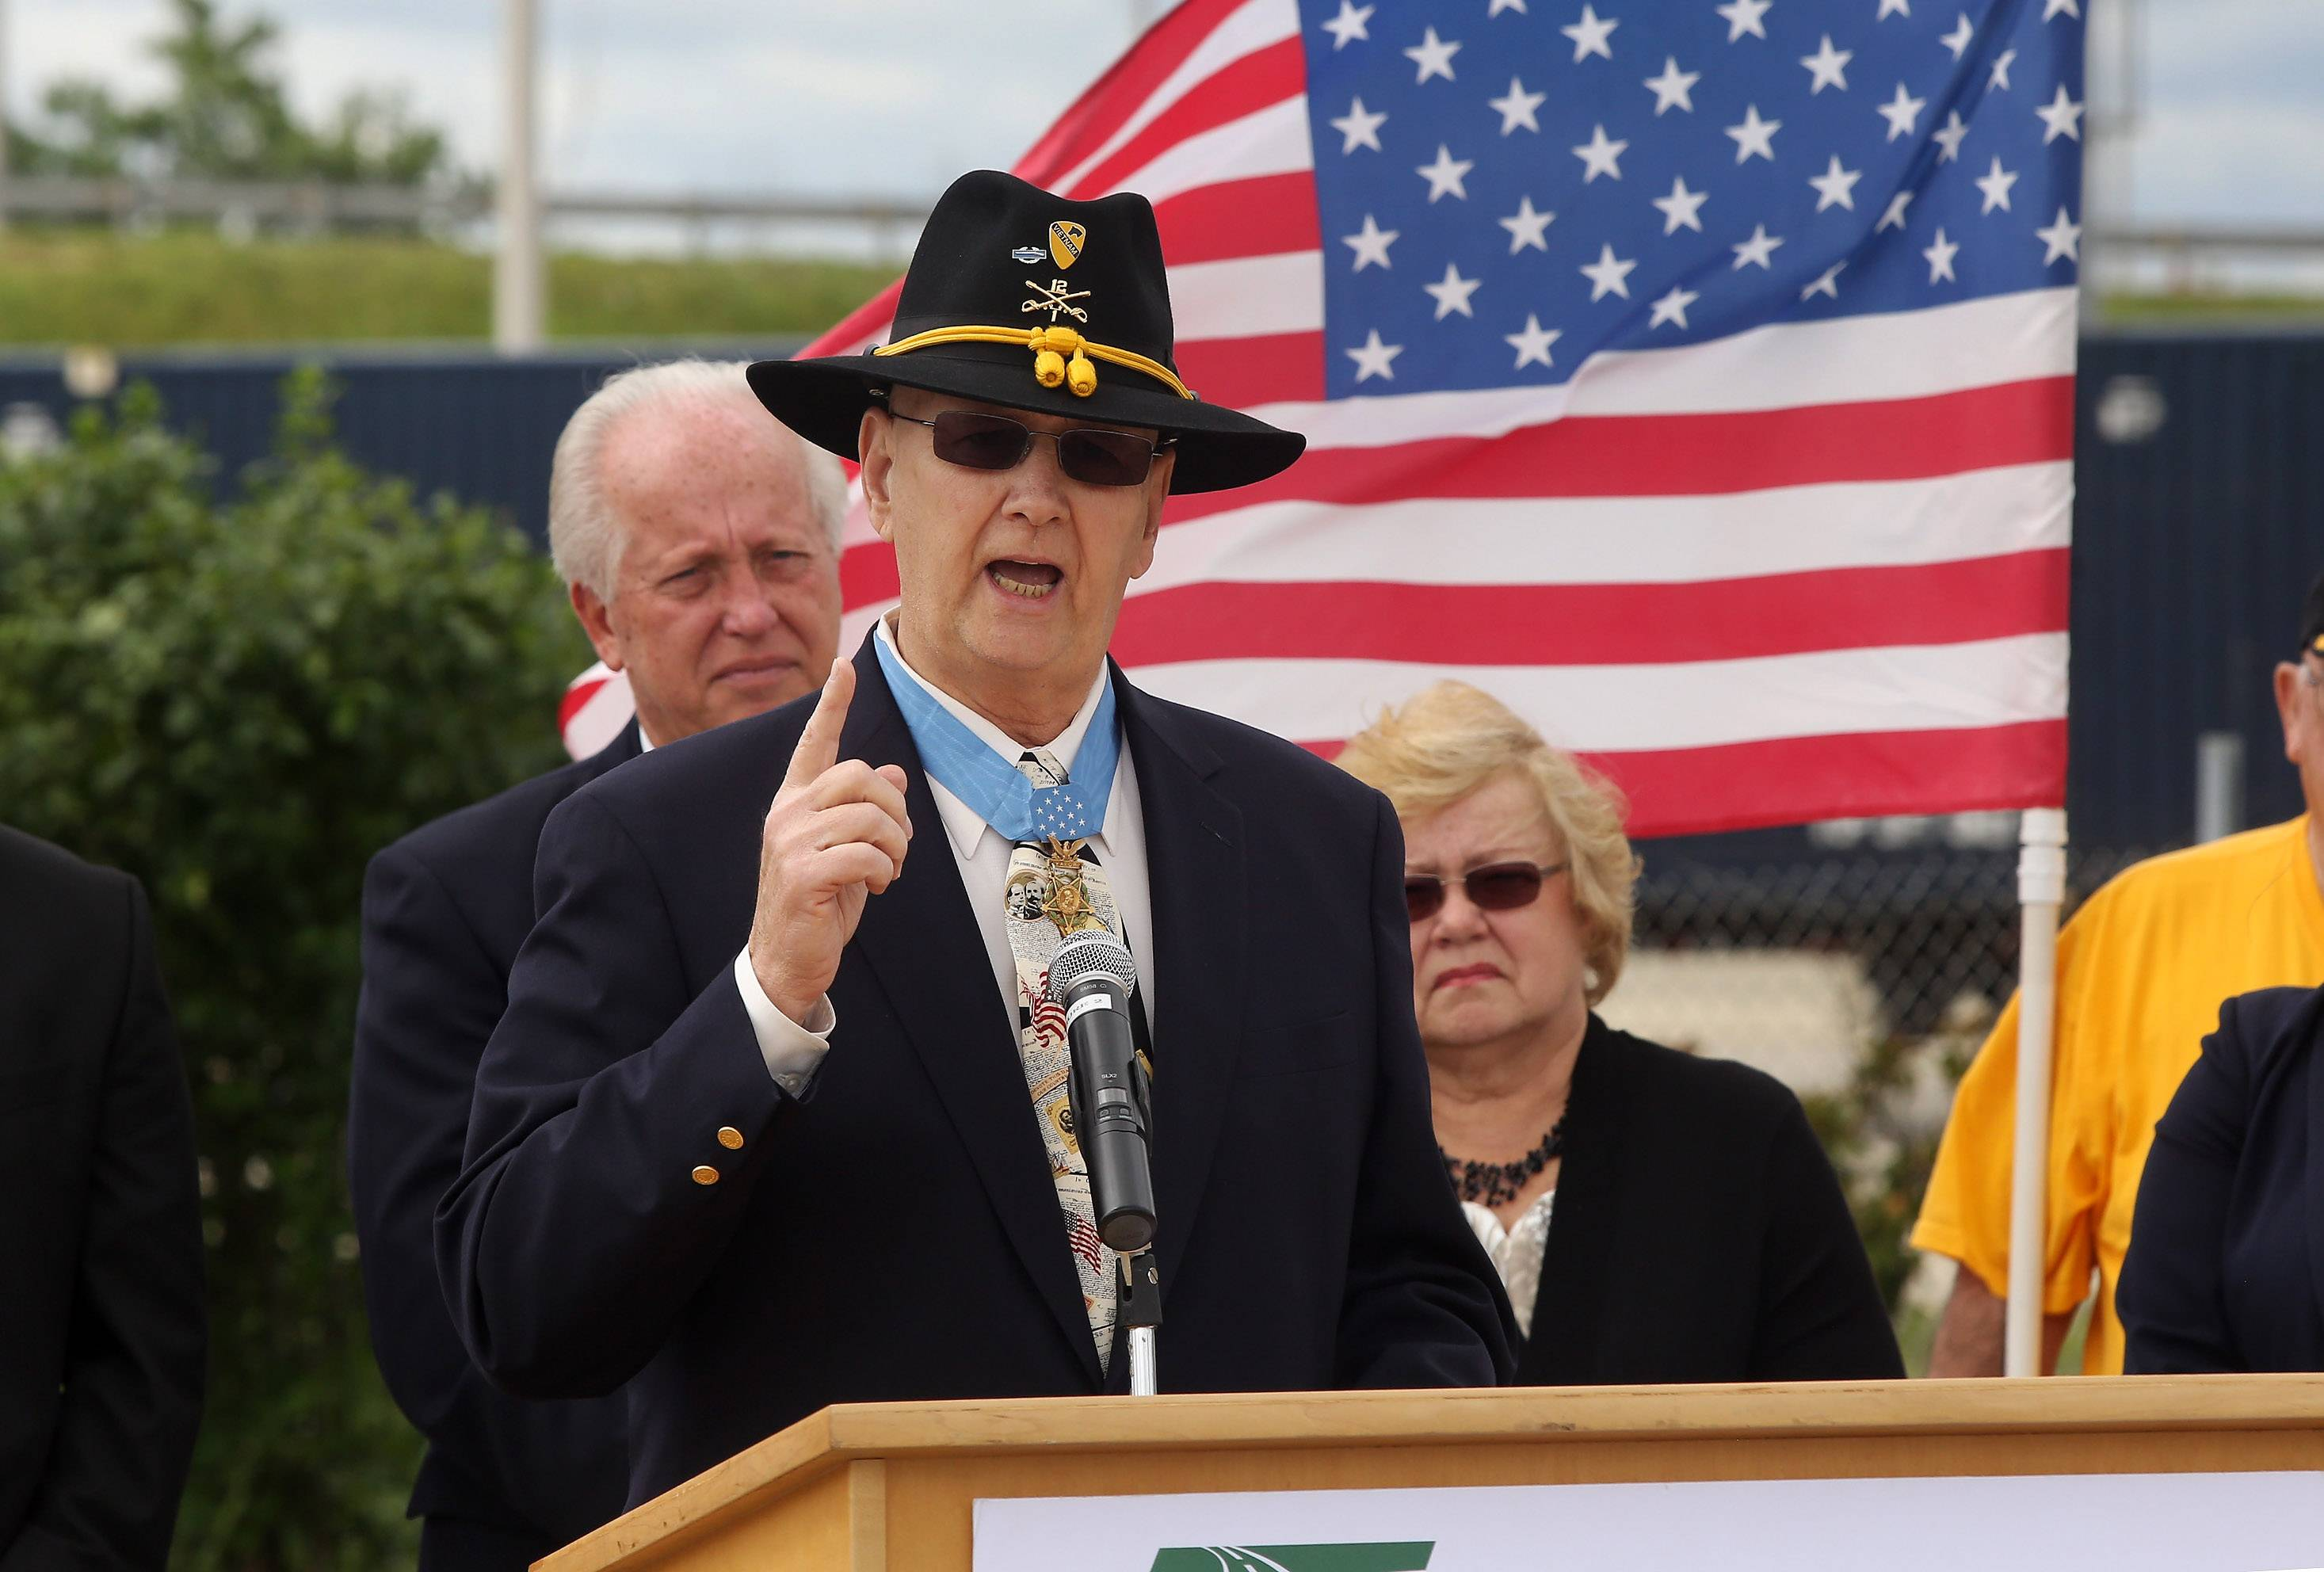 Medal of Honor recipient Allen J. Lynch of Gurnee speaks Wednesday at the dedication of the Allen J. Lynch Medal of Honor Overpass at Grand Avenue and the Tri-State Tollway in Gurnee.